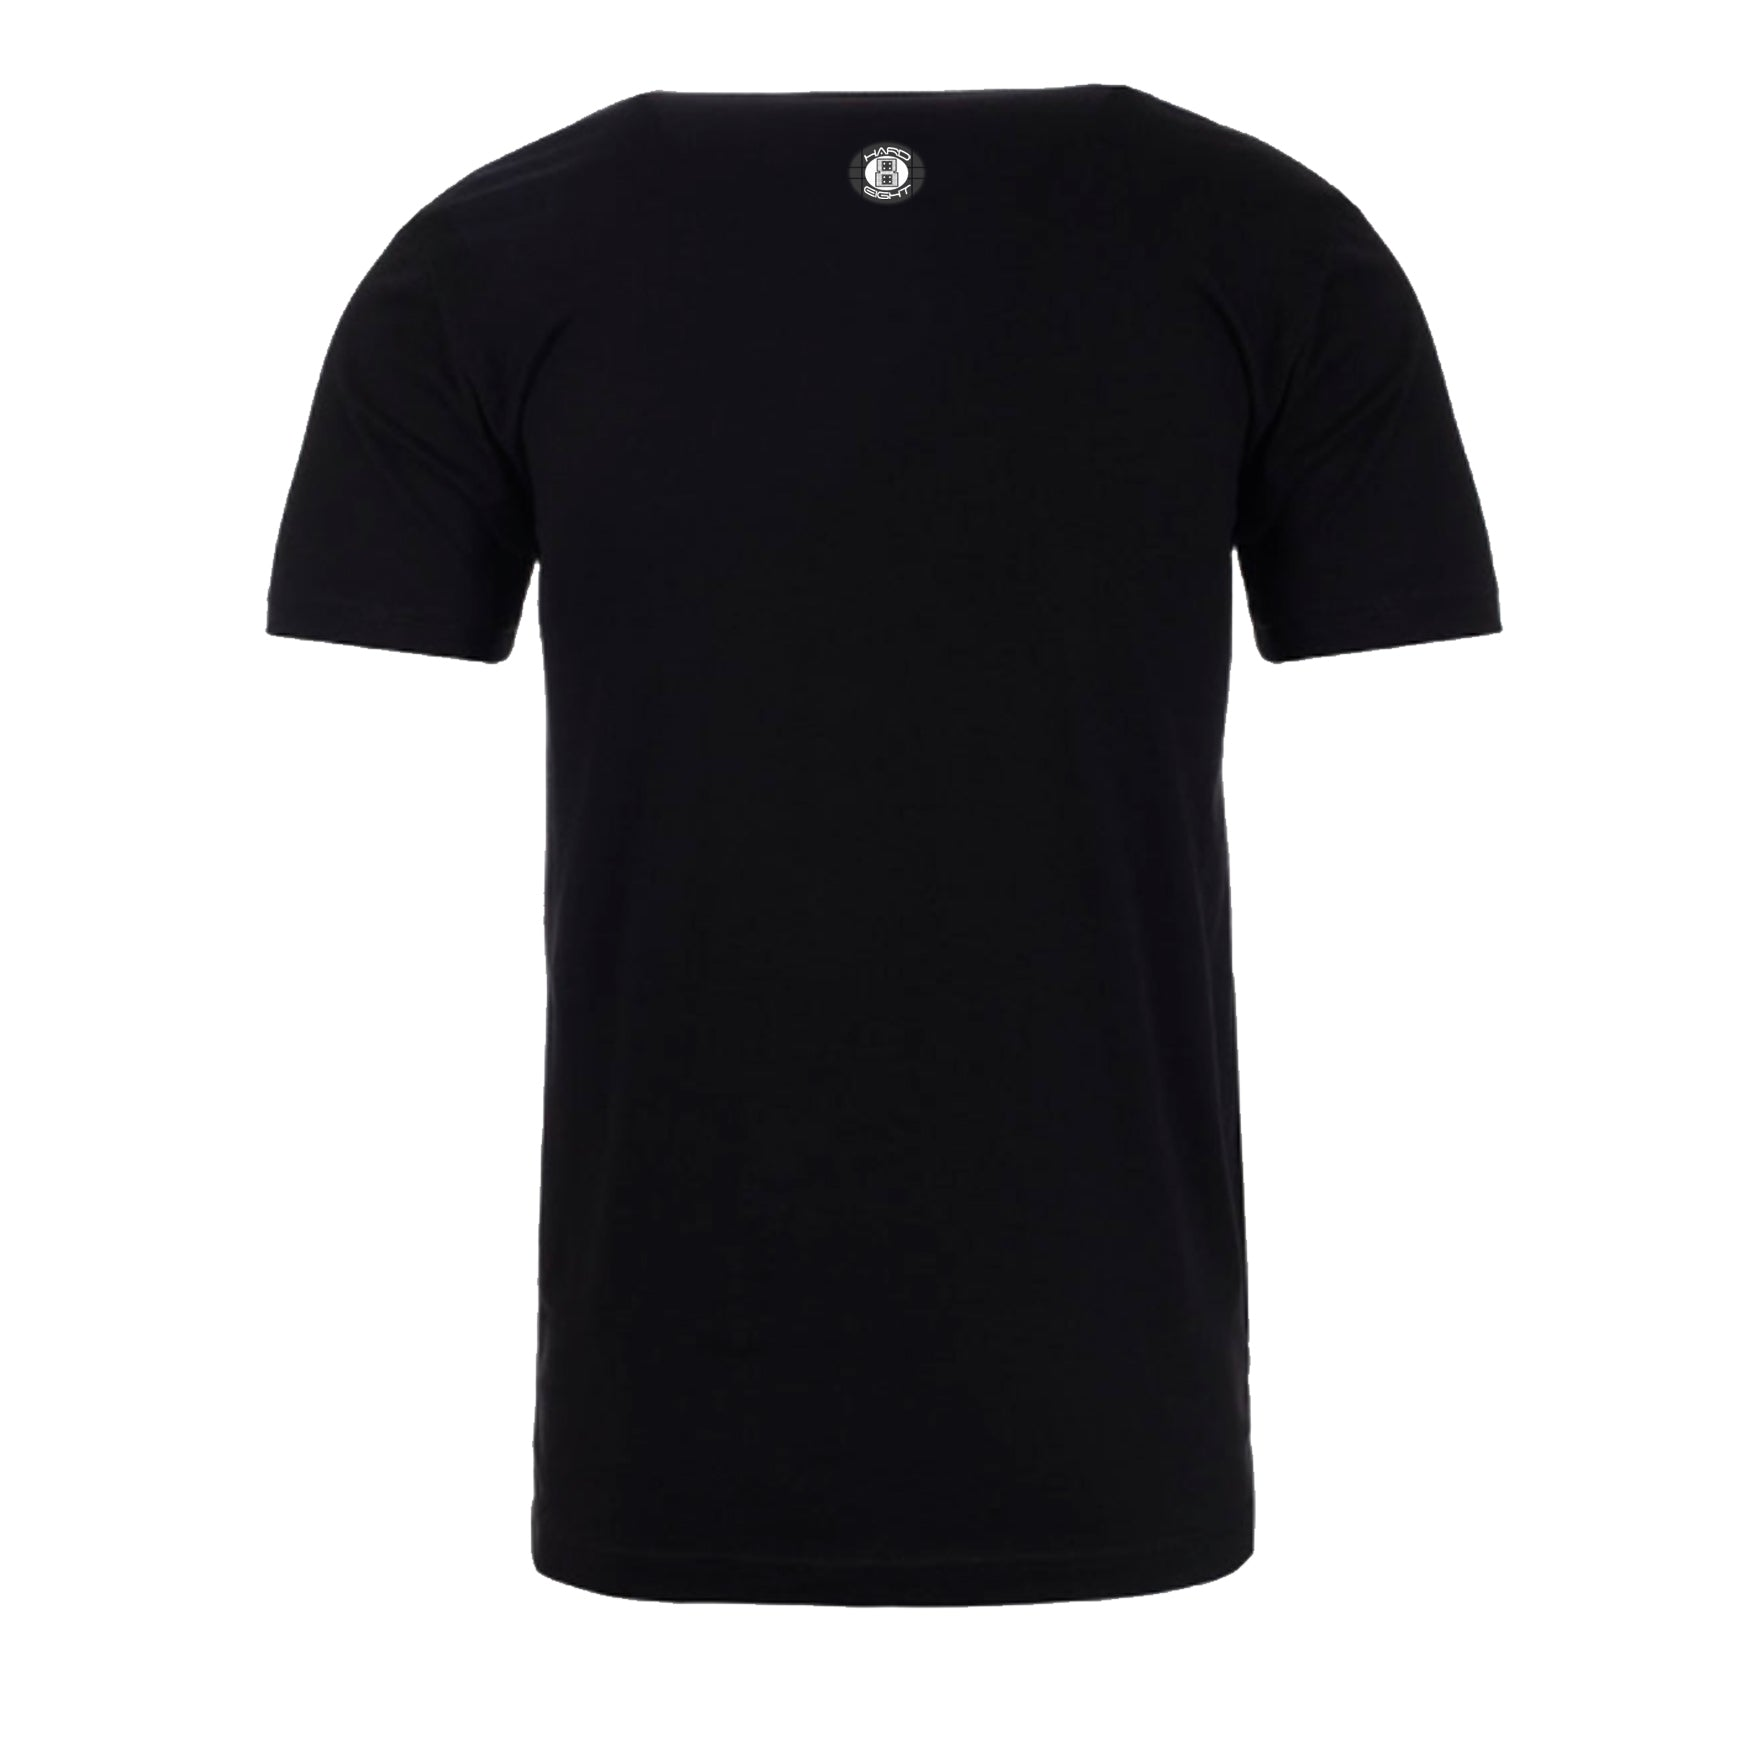 "MEN'S ""DISCO DISCO DISCO"" SUEDED COTTON BLEND V-Neck Black"